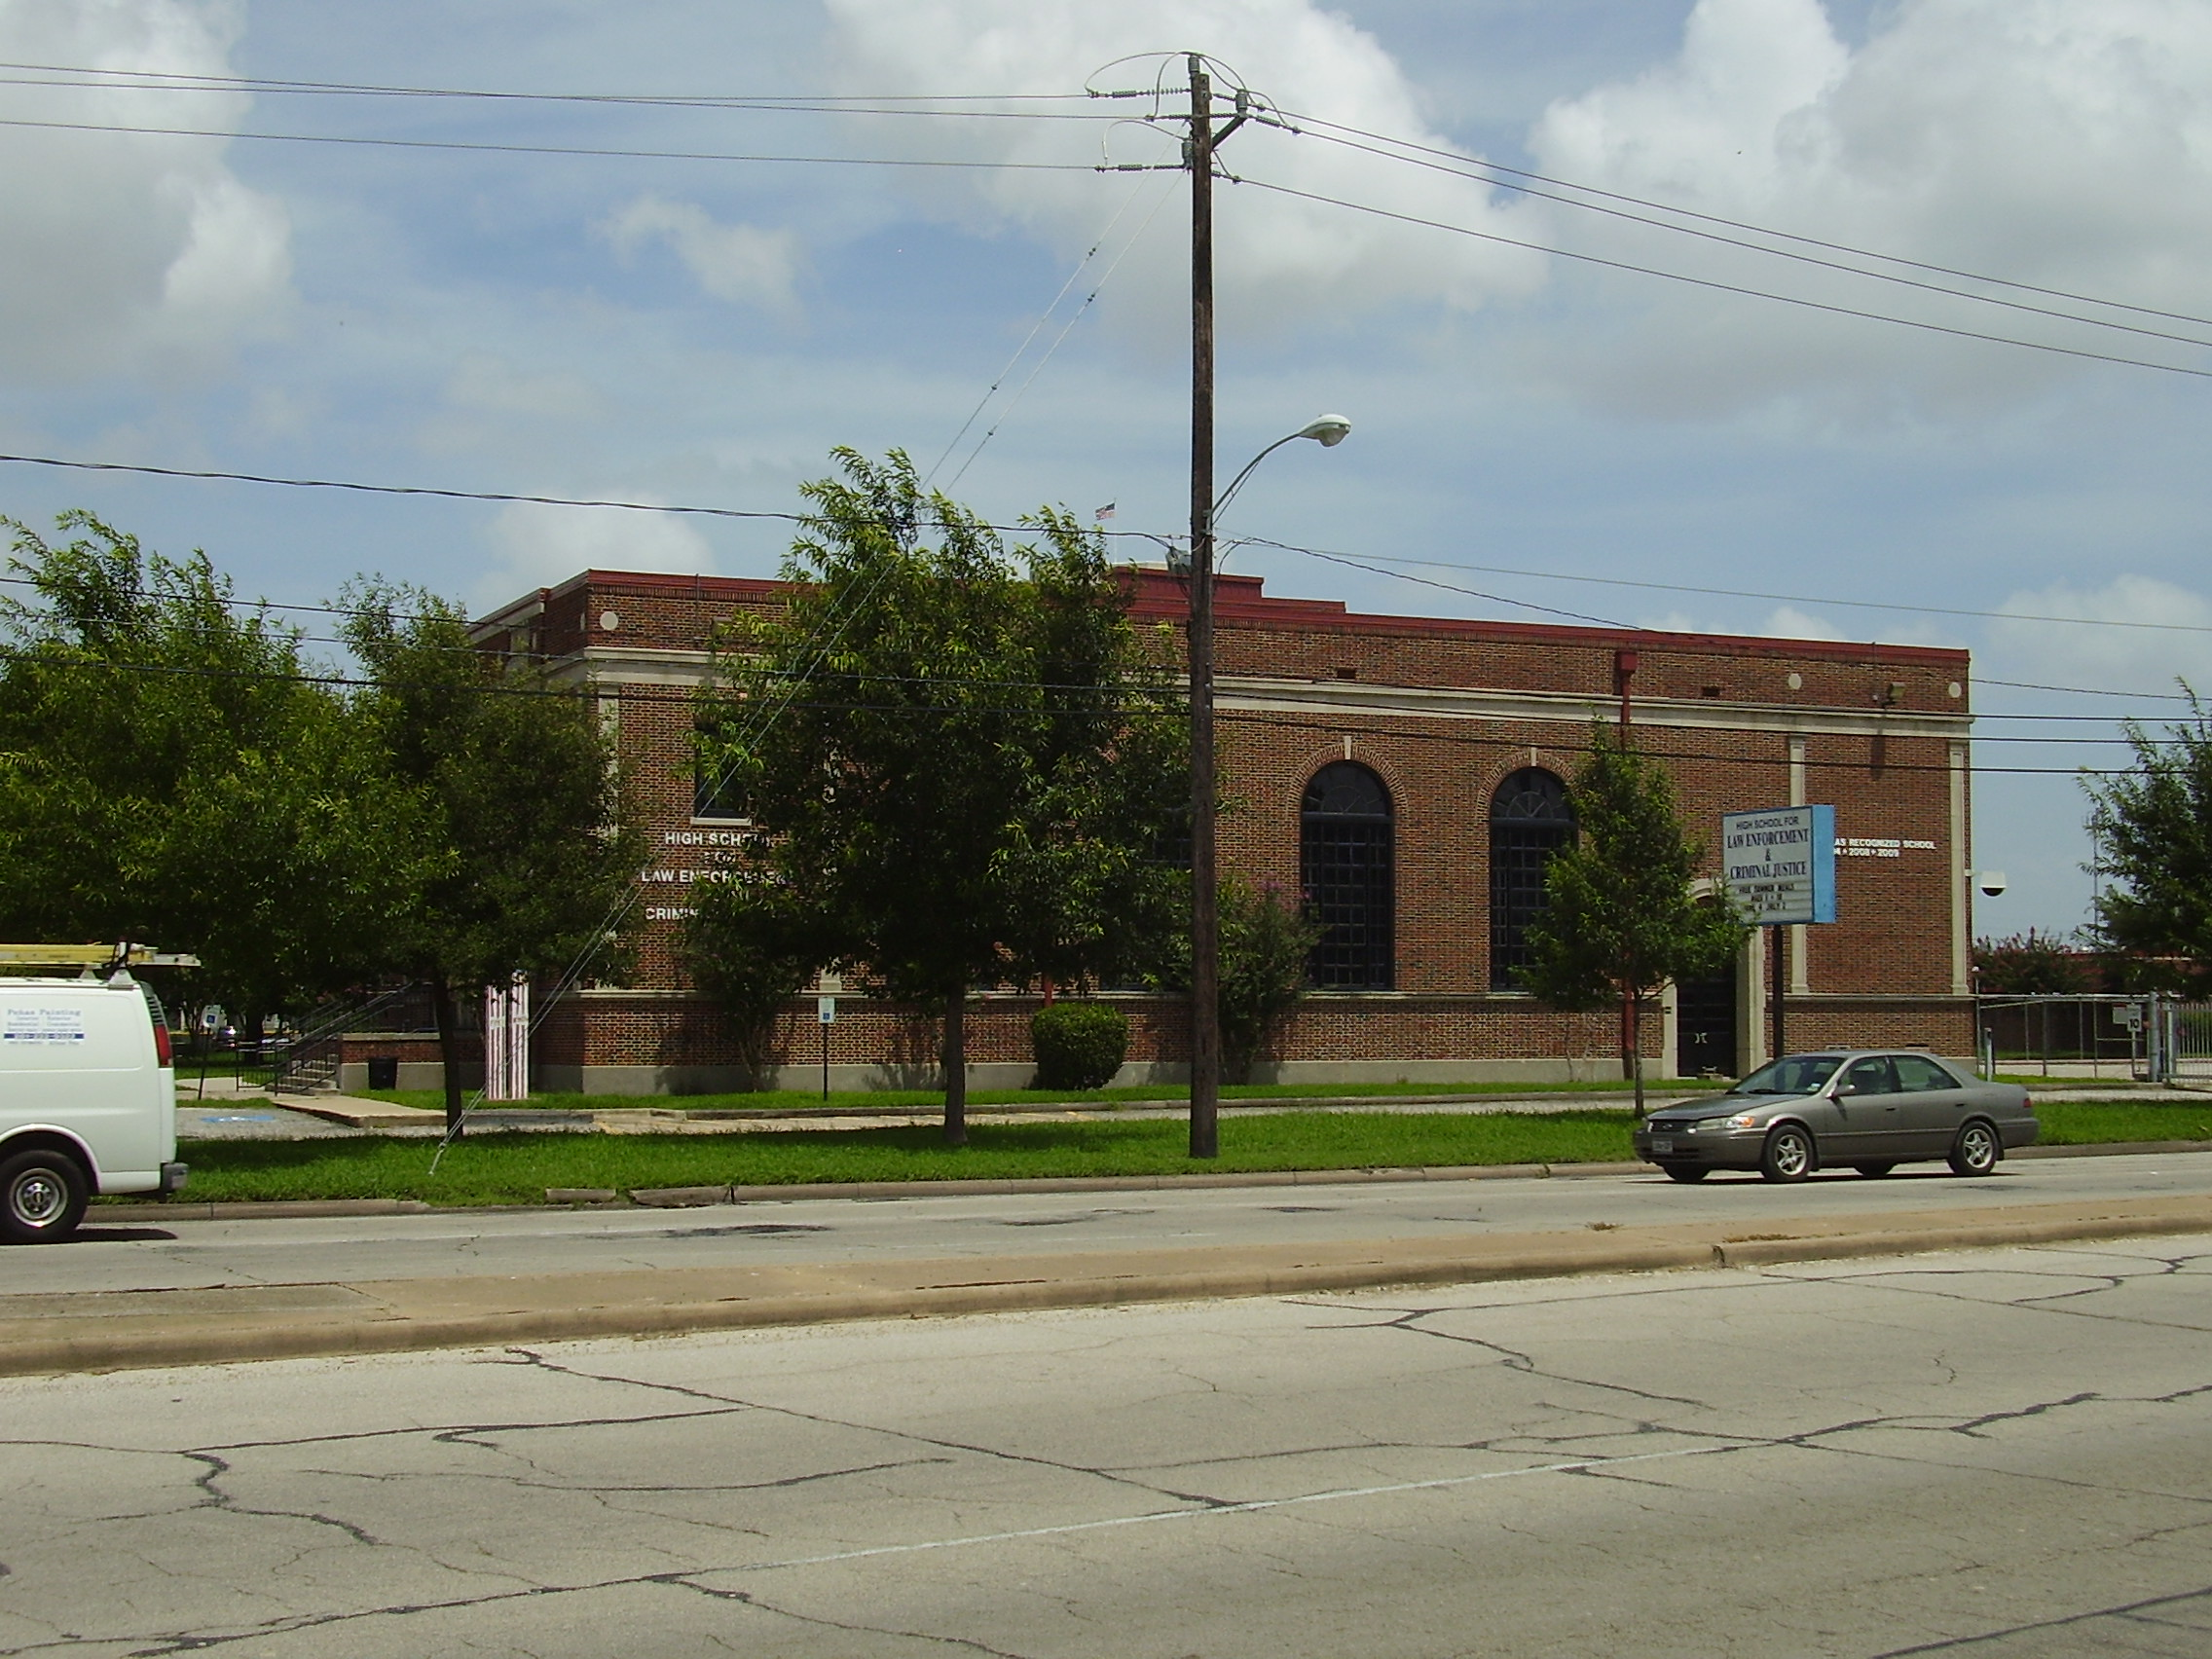 High School for Law Enforcement and Criminal Justice